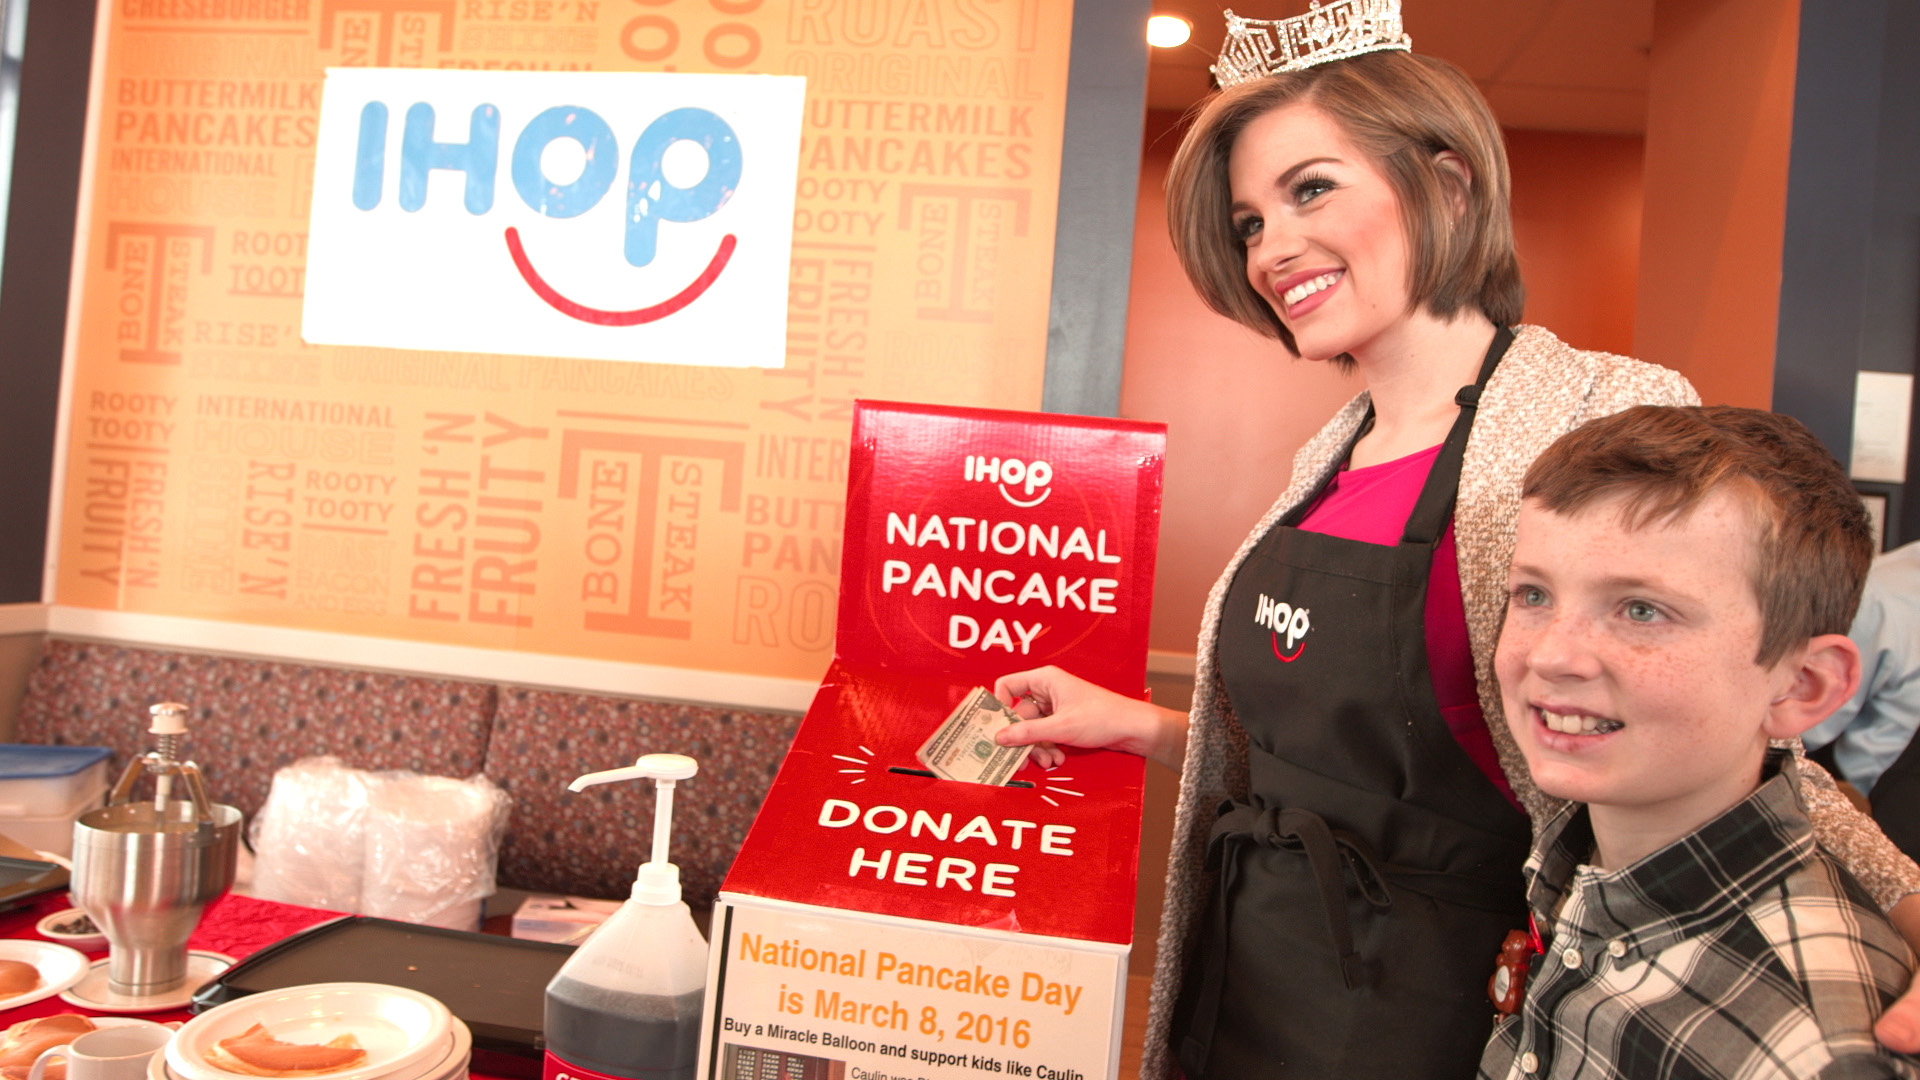 Miss America, Betty Cantrell, makes a donation to Dayton Children's Hospital leading up to IHOP's National Pancake Day, March 8